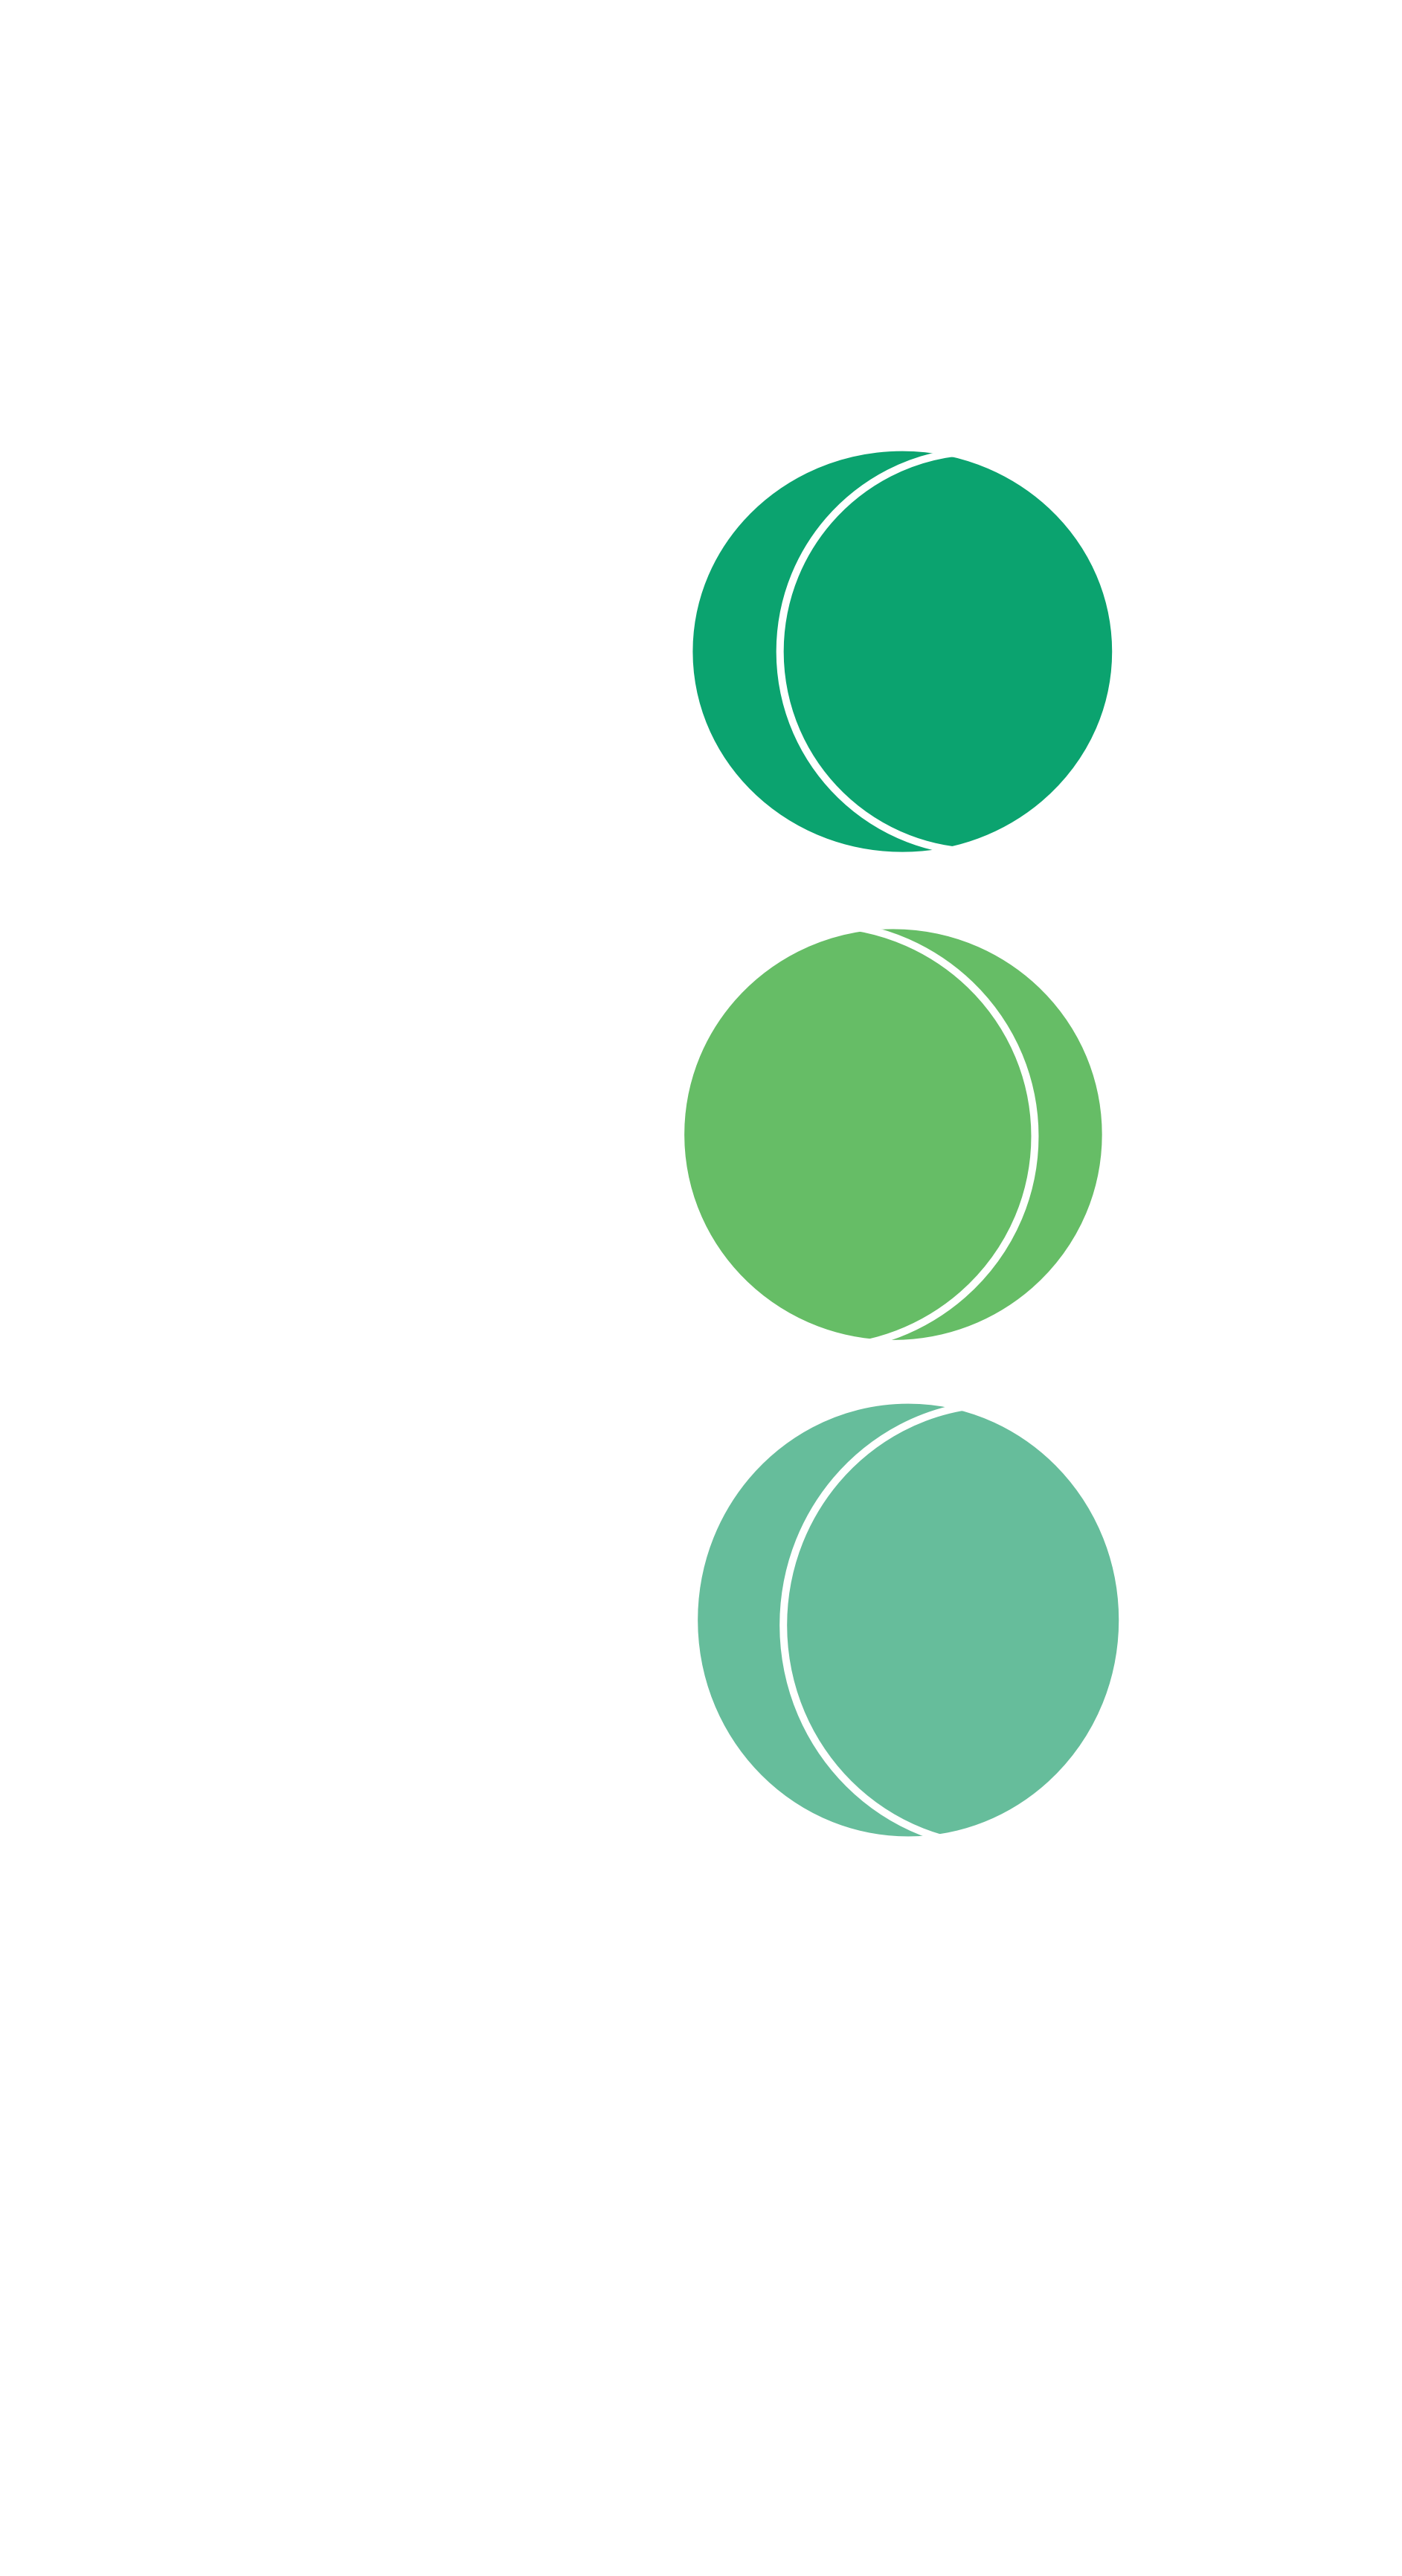 Palette Green Greenpalette Aesthetic Greenaesthetic Pastel Circle Freetoedit Remixit Green Aesthetic Pretty Notes Aesthetic Stickers